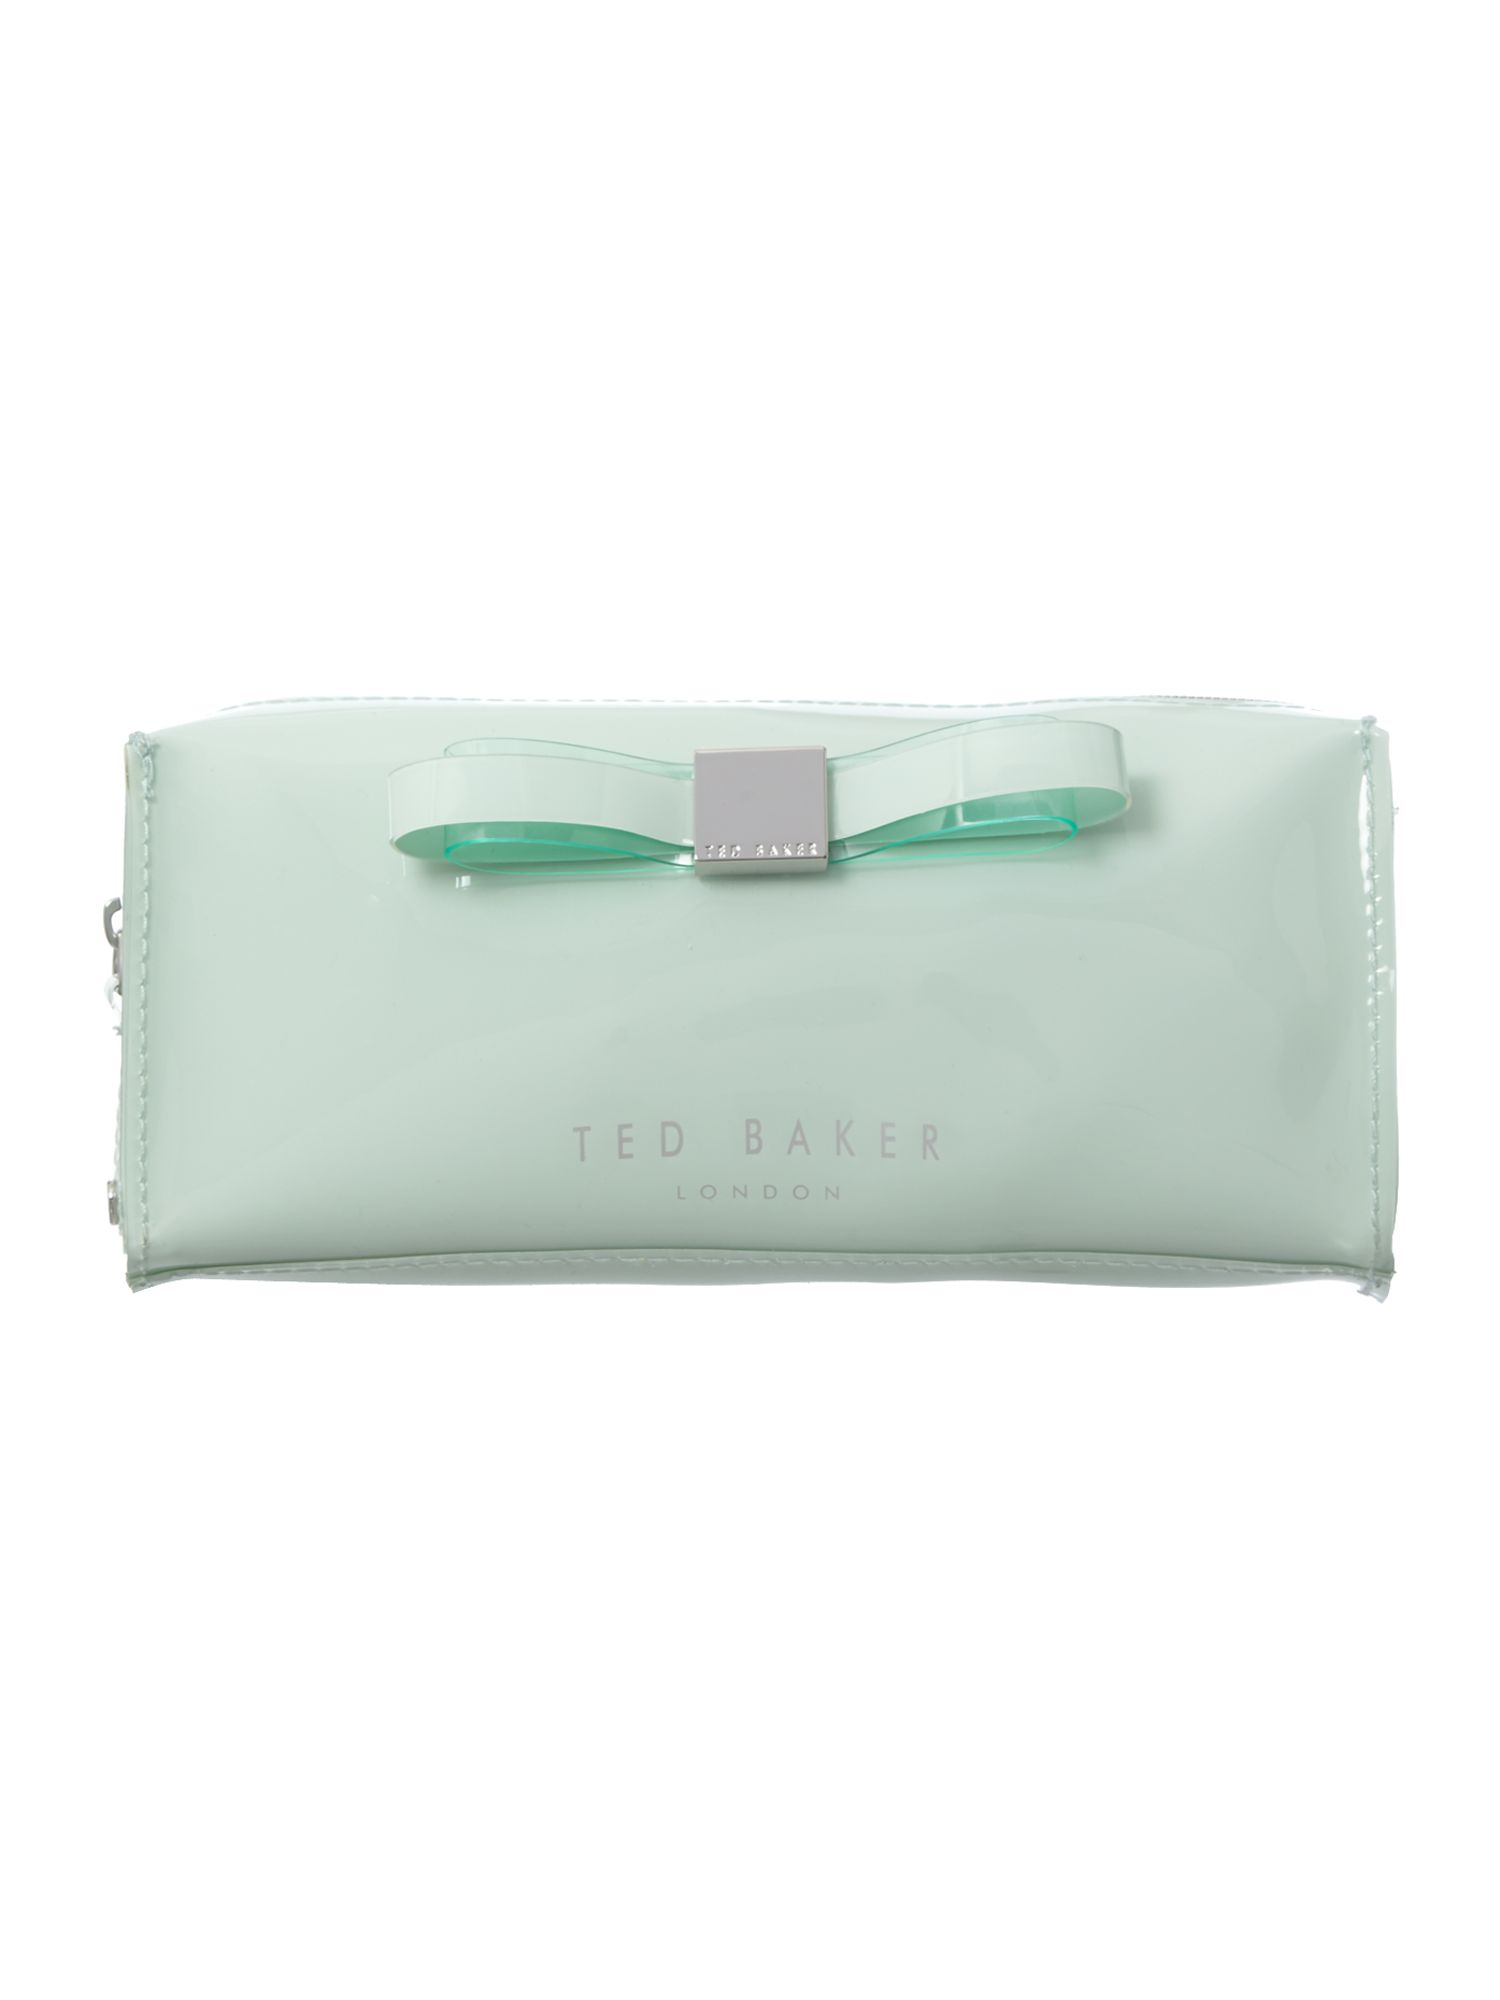 Medium green cosmetics case